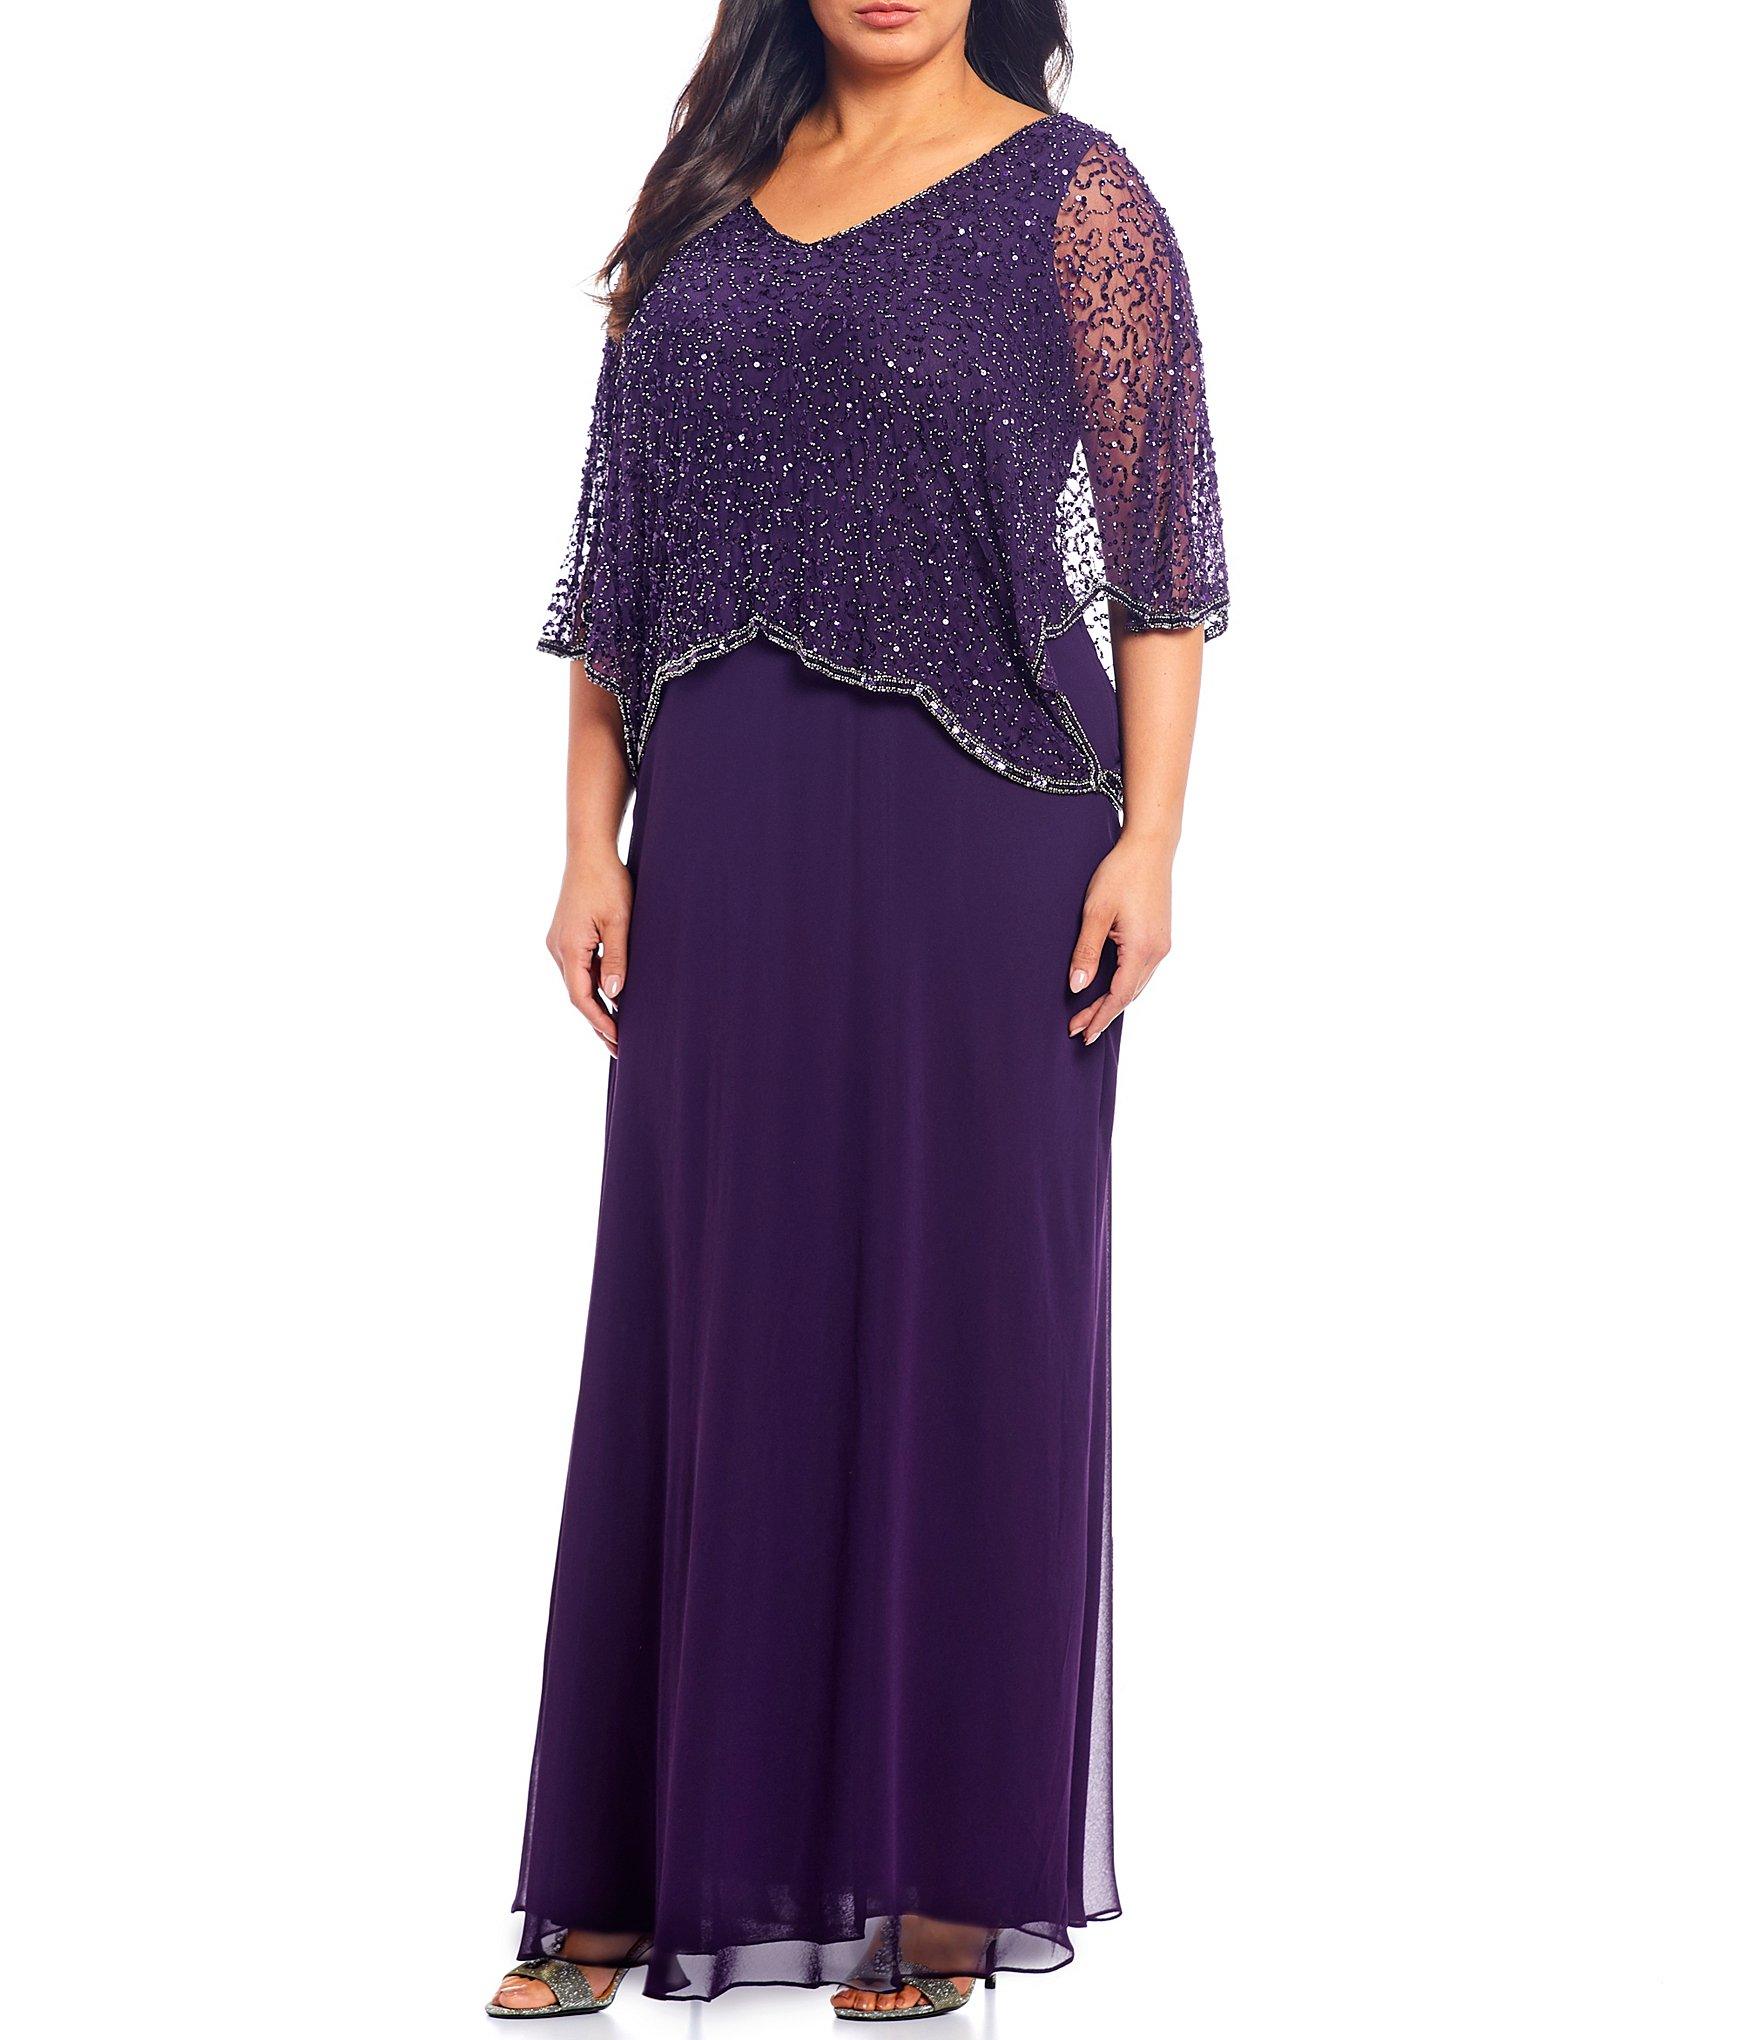 Jkara Plus Size Sequin Beaded V,Neck 3/4 Sleeve Popover Gown